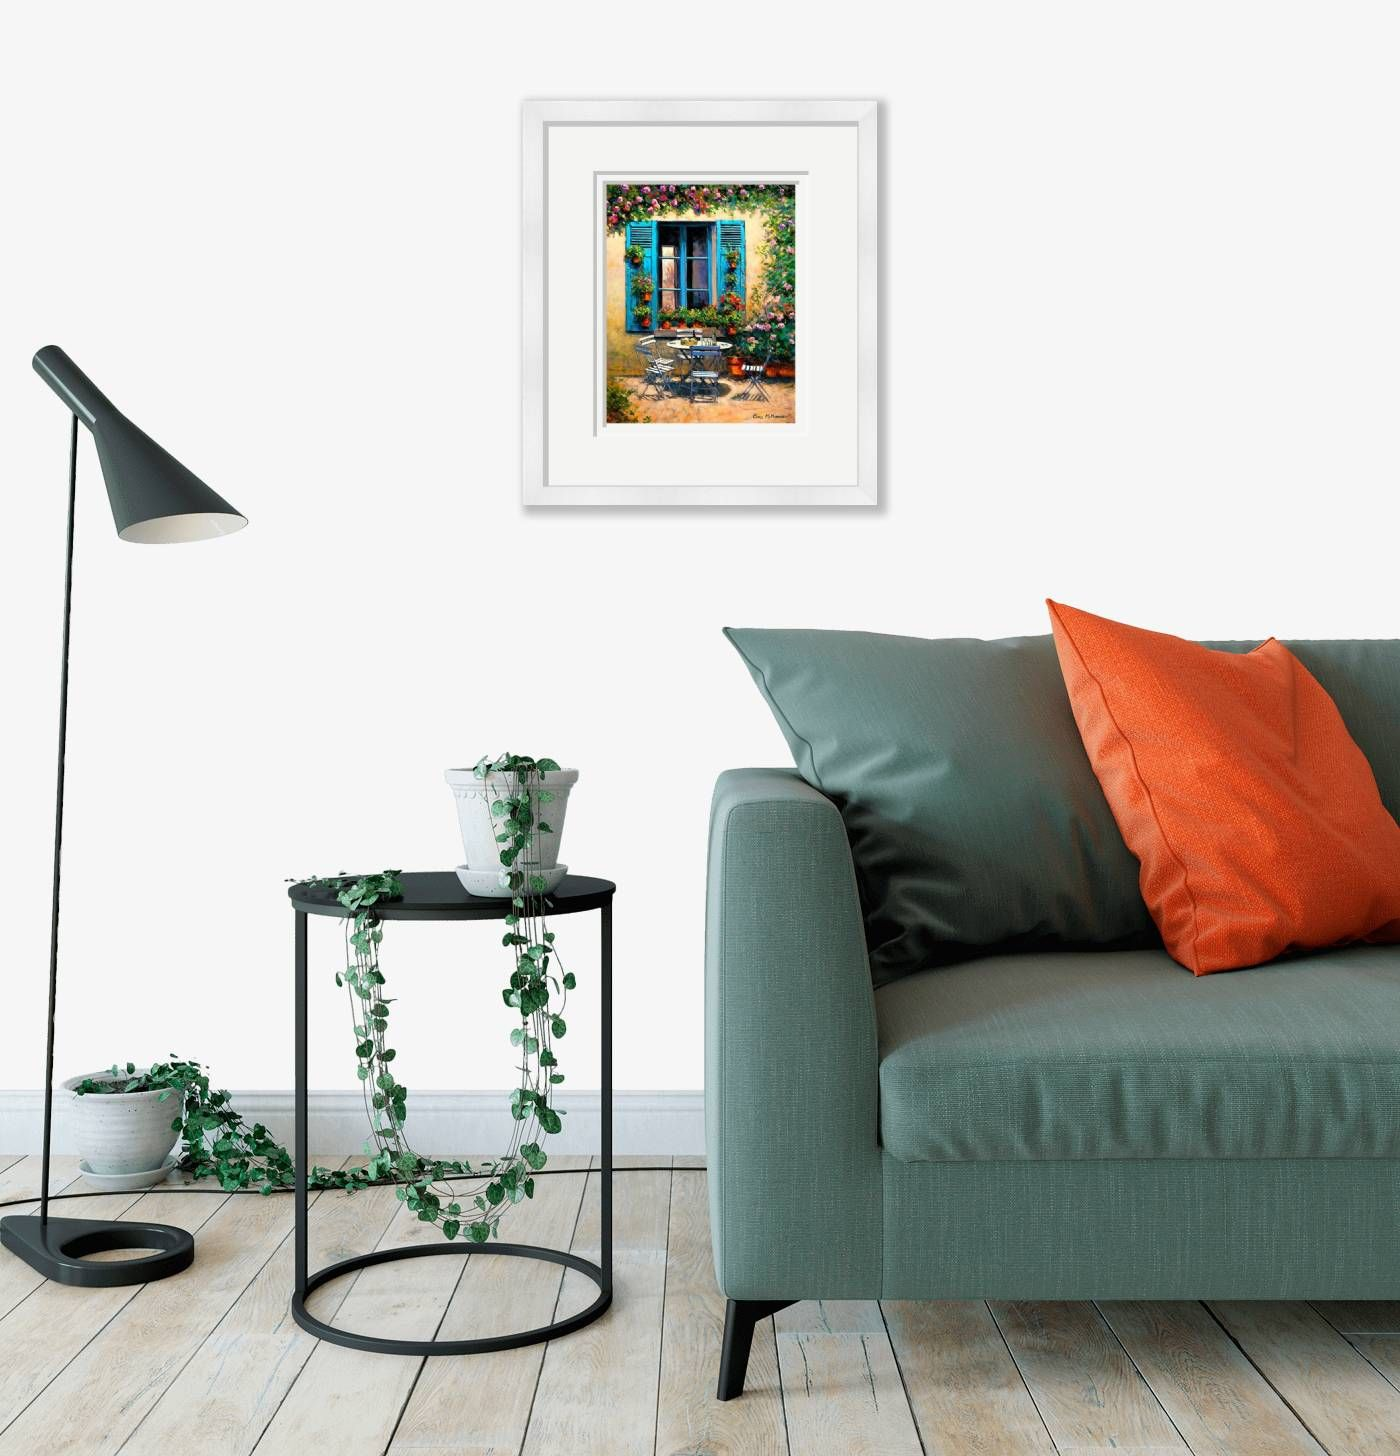 Medium framed - The House with the Blue Shutters - 548 by Chris McMorrow